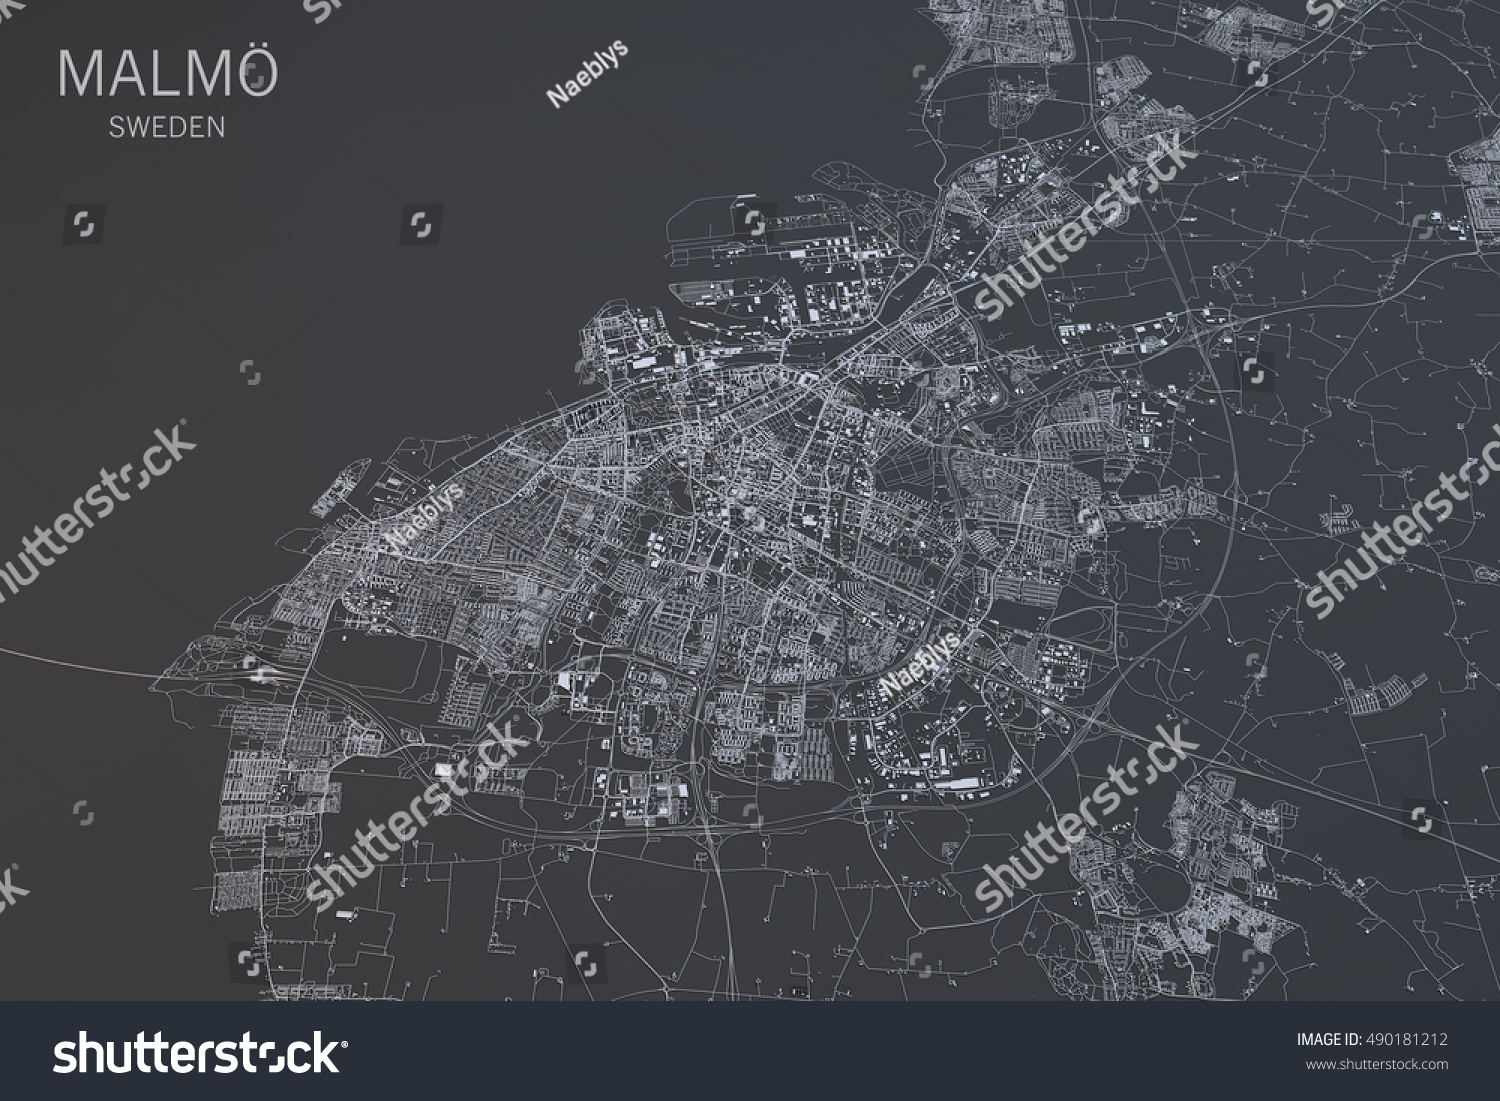 Malmo Map Satellite View City Sweden Stock Illustration - Sweden map satellite